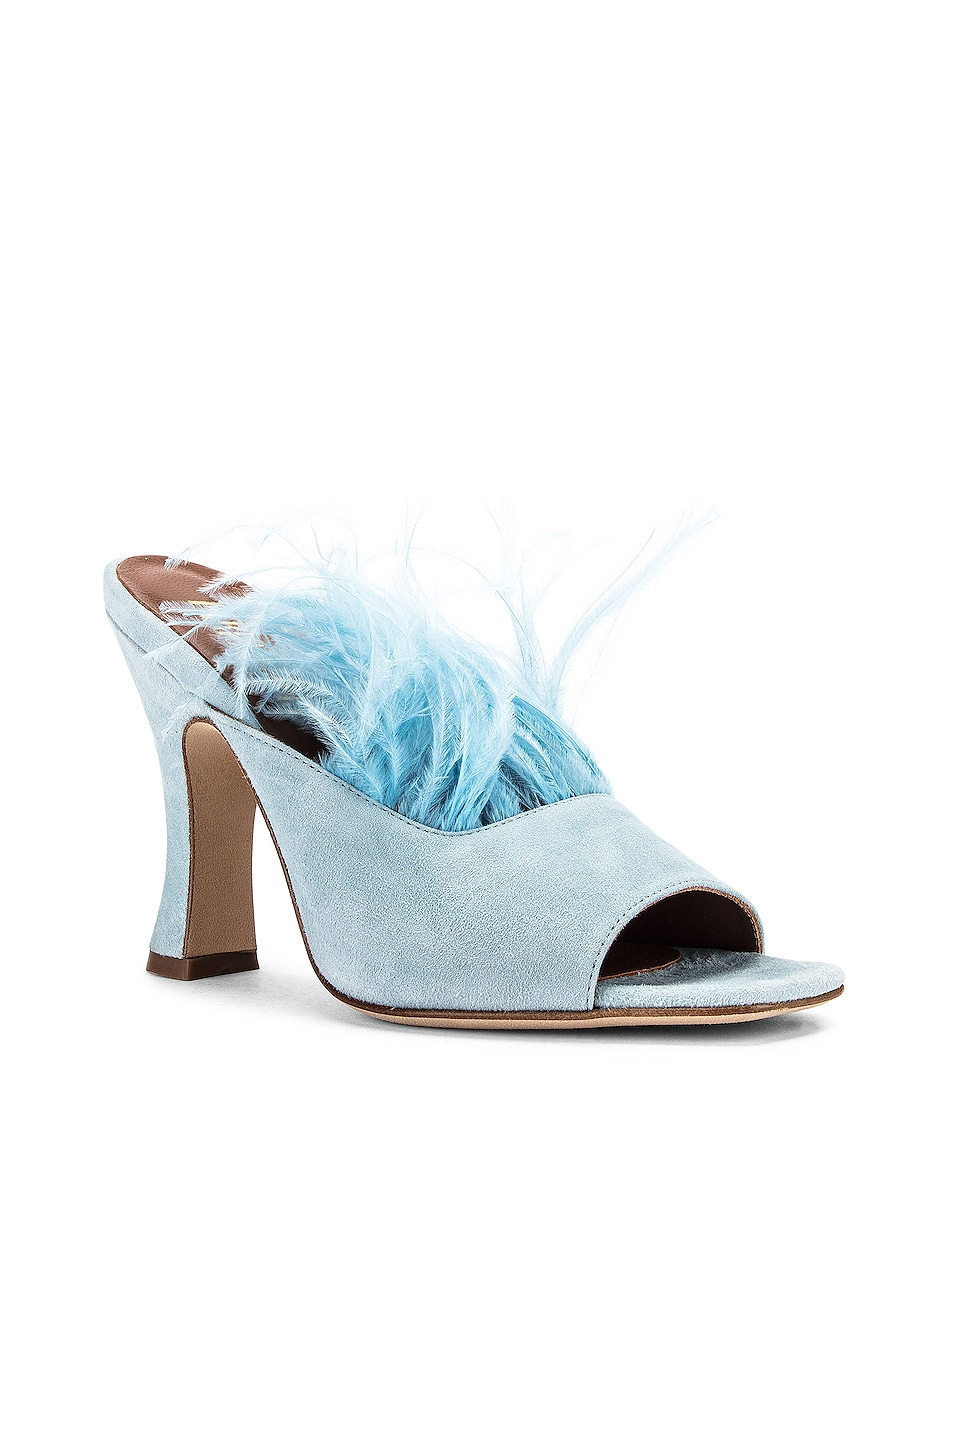 Image 2 of Paris Texas Suede Square Toe Mule with Marabou Feathers in Light Blue